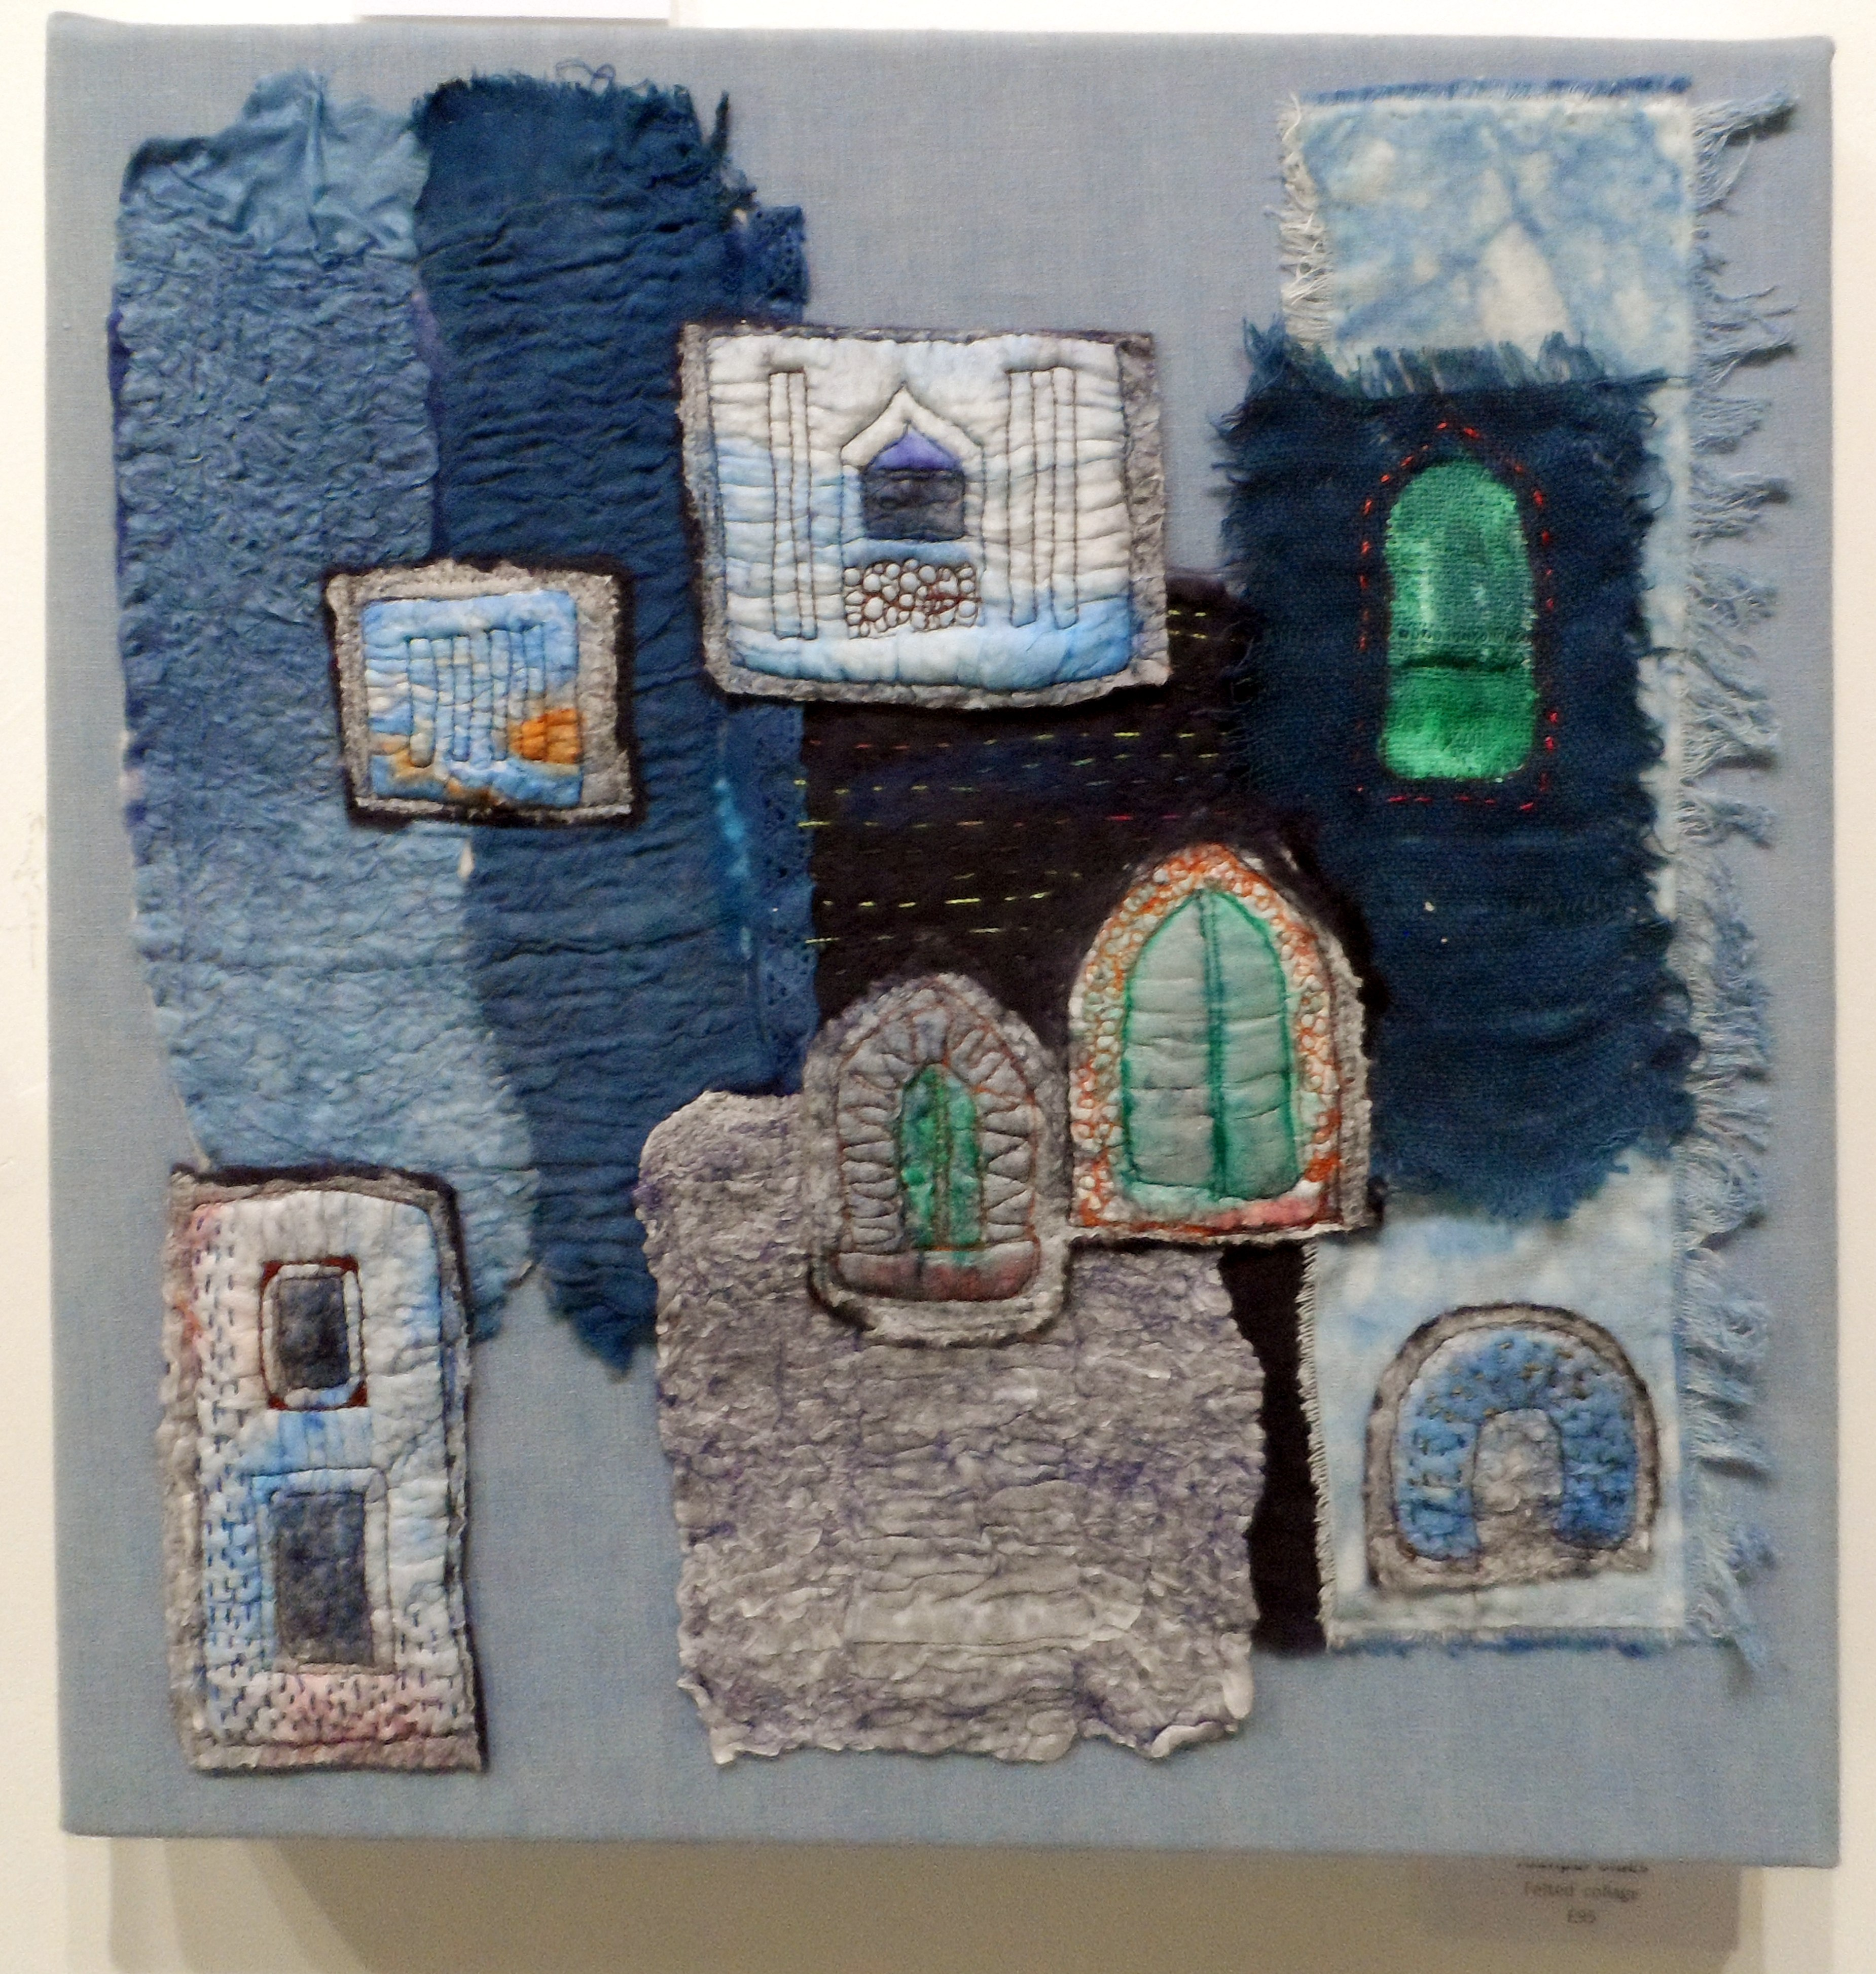 JODHPUR BLUES by Rosey Paul, felted collage, Re-View Textile Group, Frodsham 2019